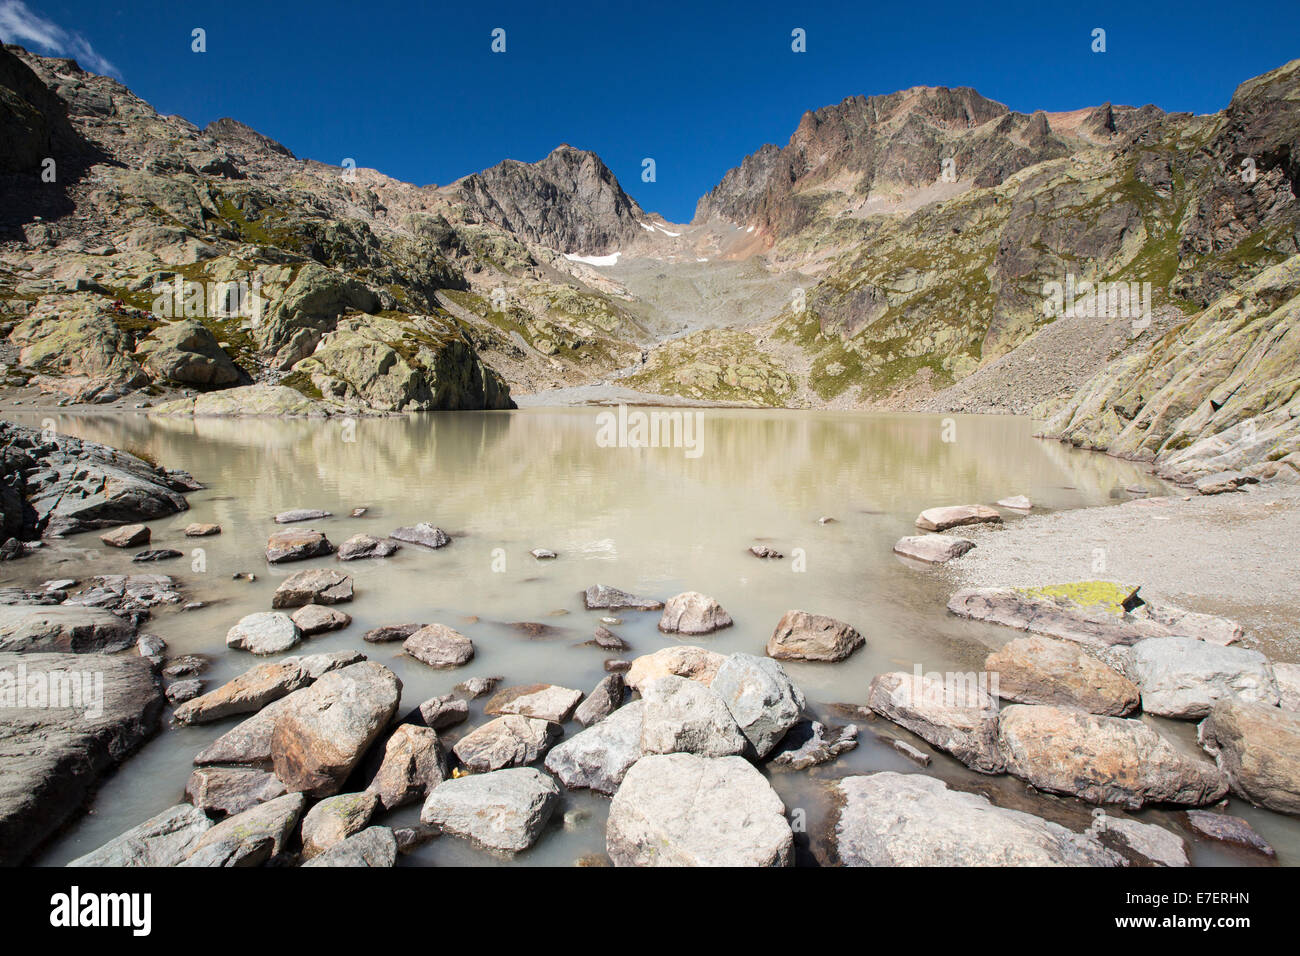 Lac Blanc on the Aiguille rouge above Chamonix, France. - Stock Image